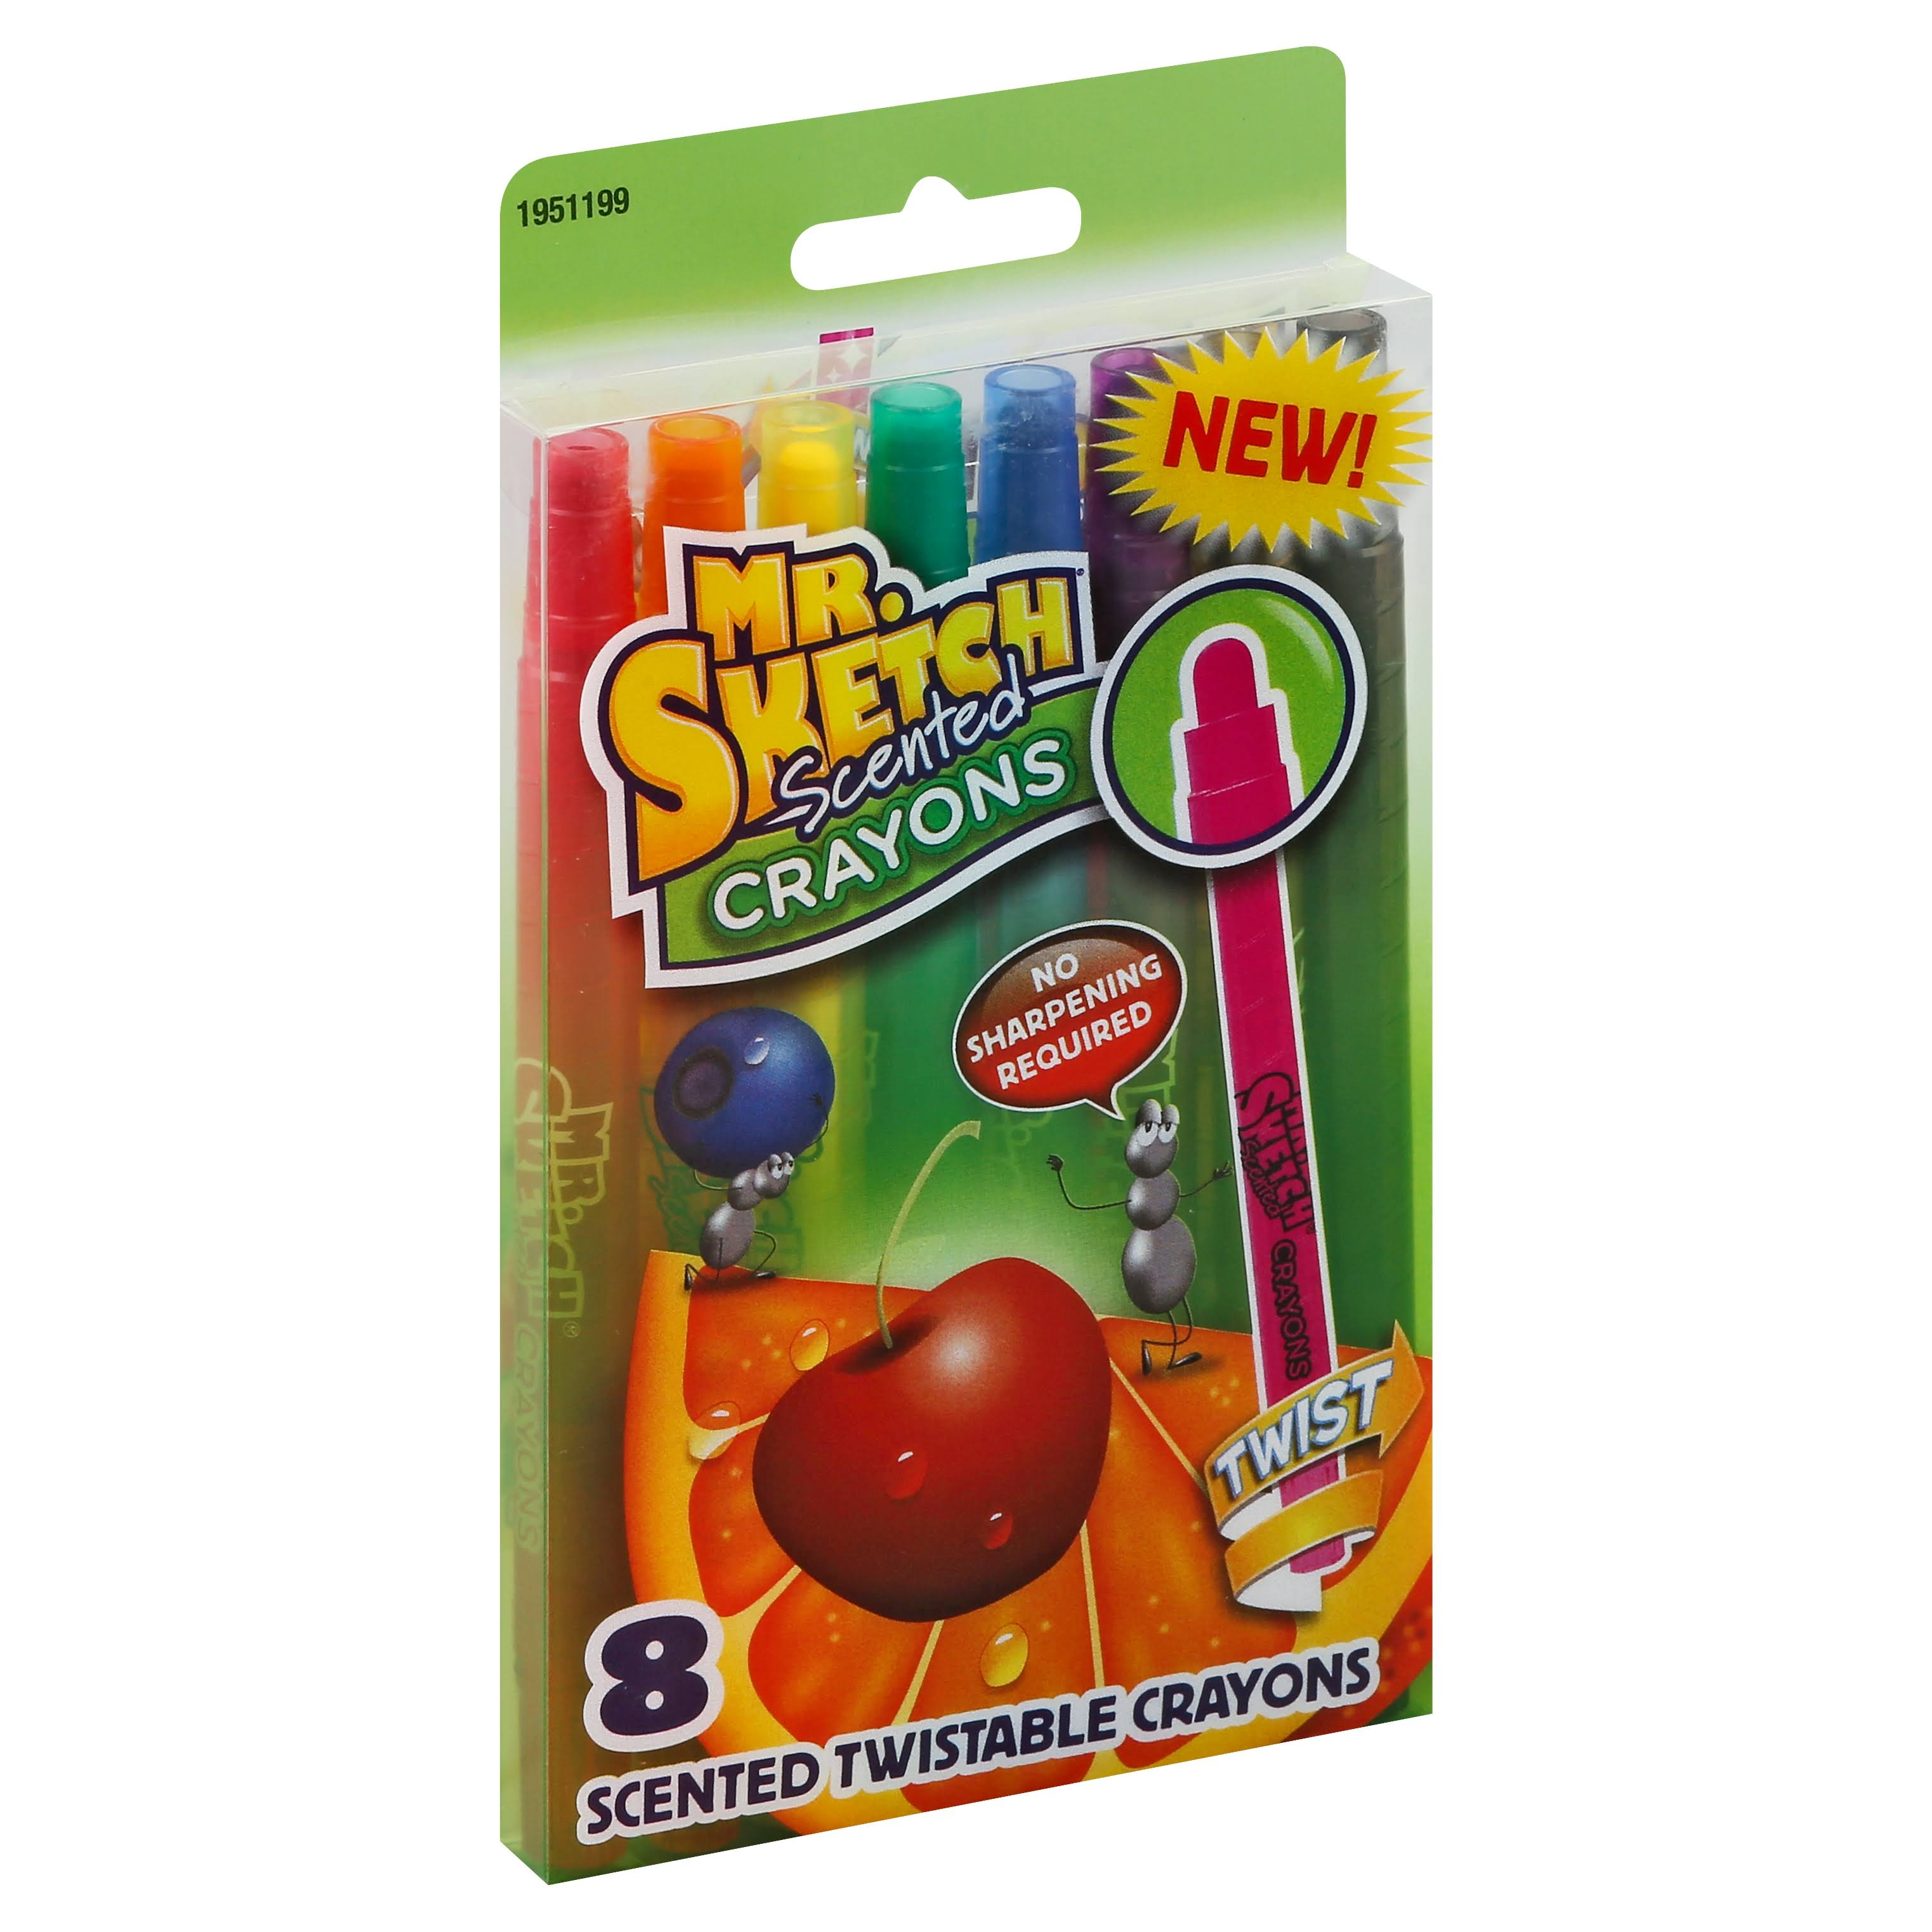 Mr Sketch Scented Crayons - 8 Scented Twistable Crayons